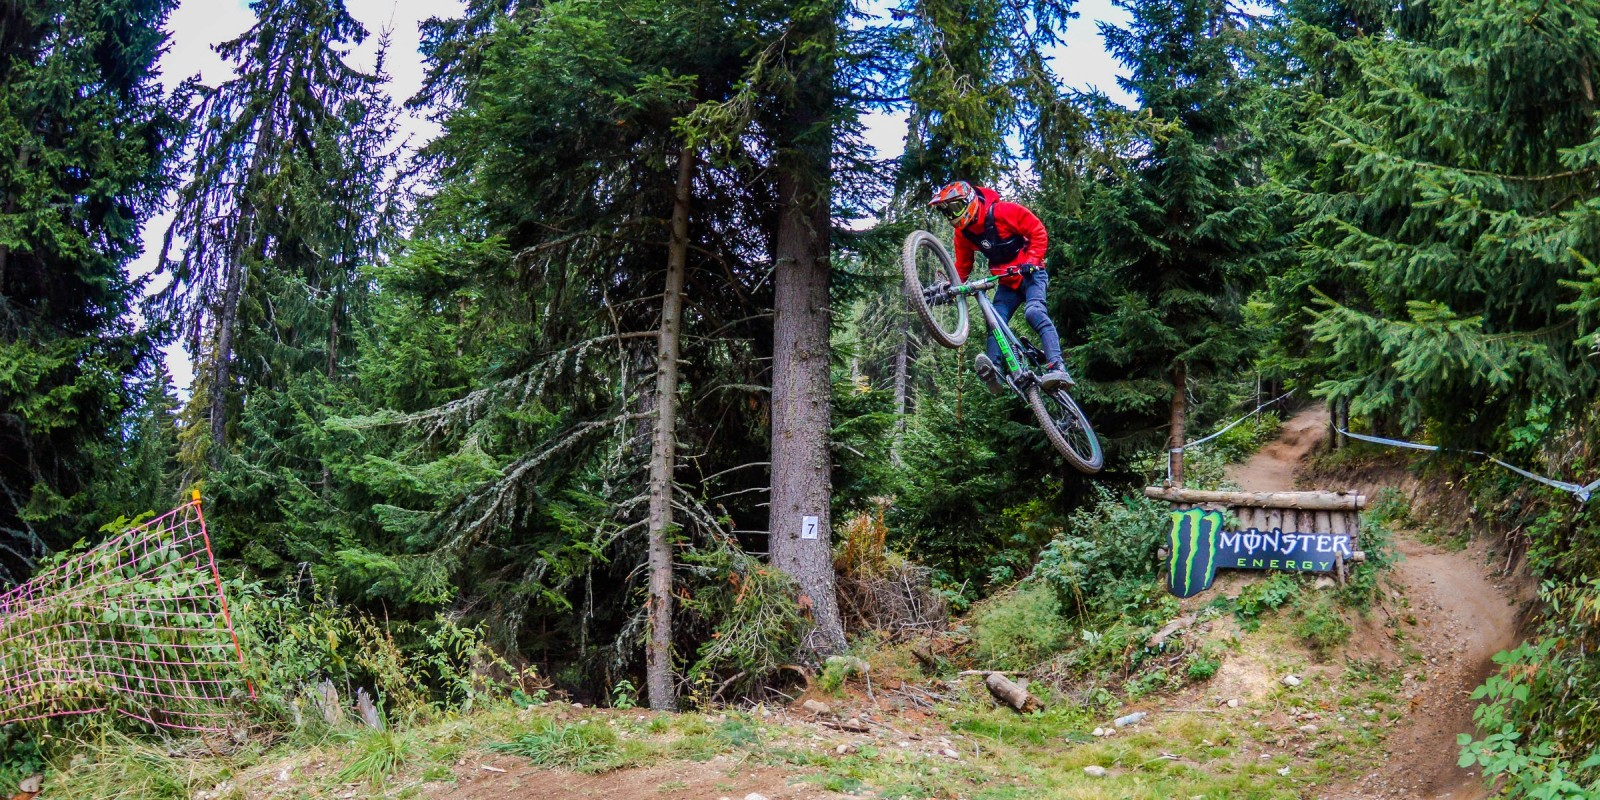 Borovets Open Cup was a UCI class 1 MTB event sponsored by ME. Hristian Antonov